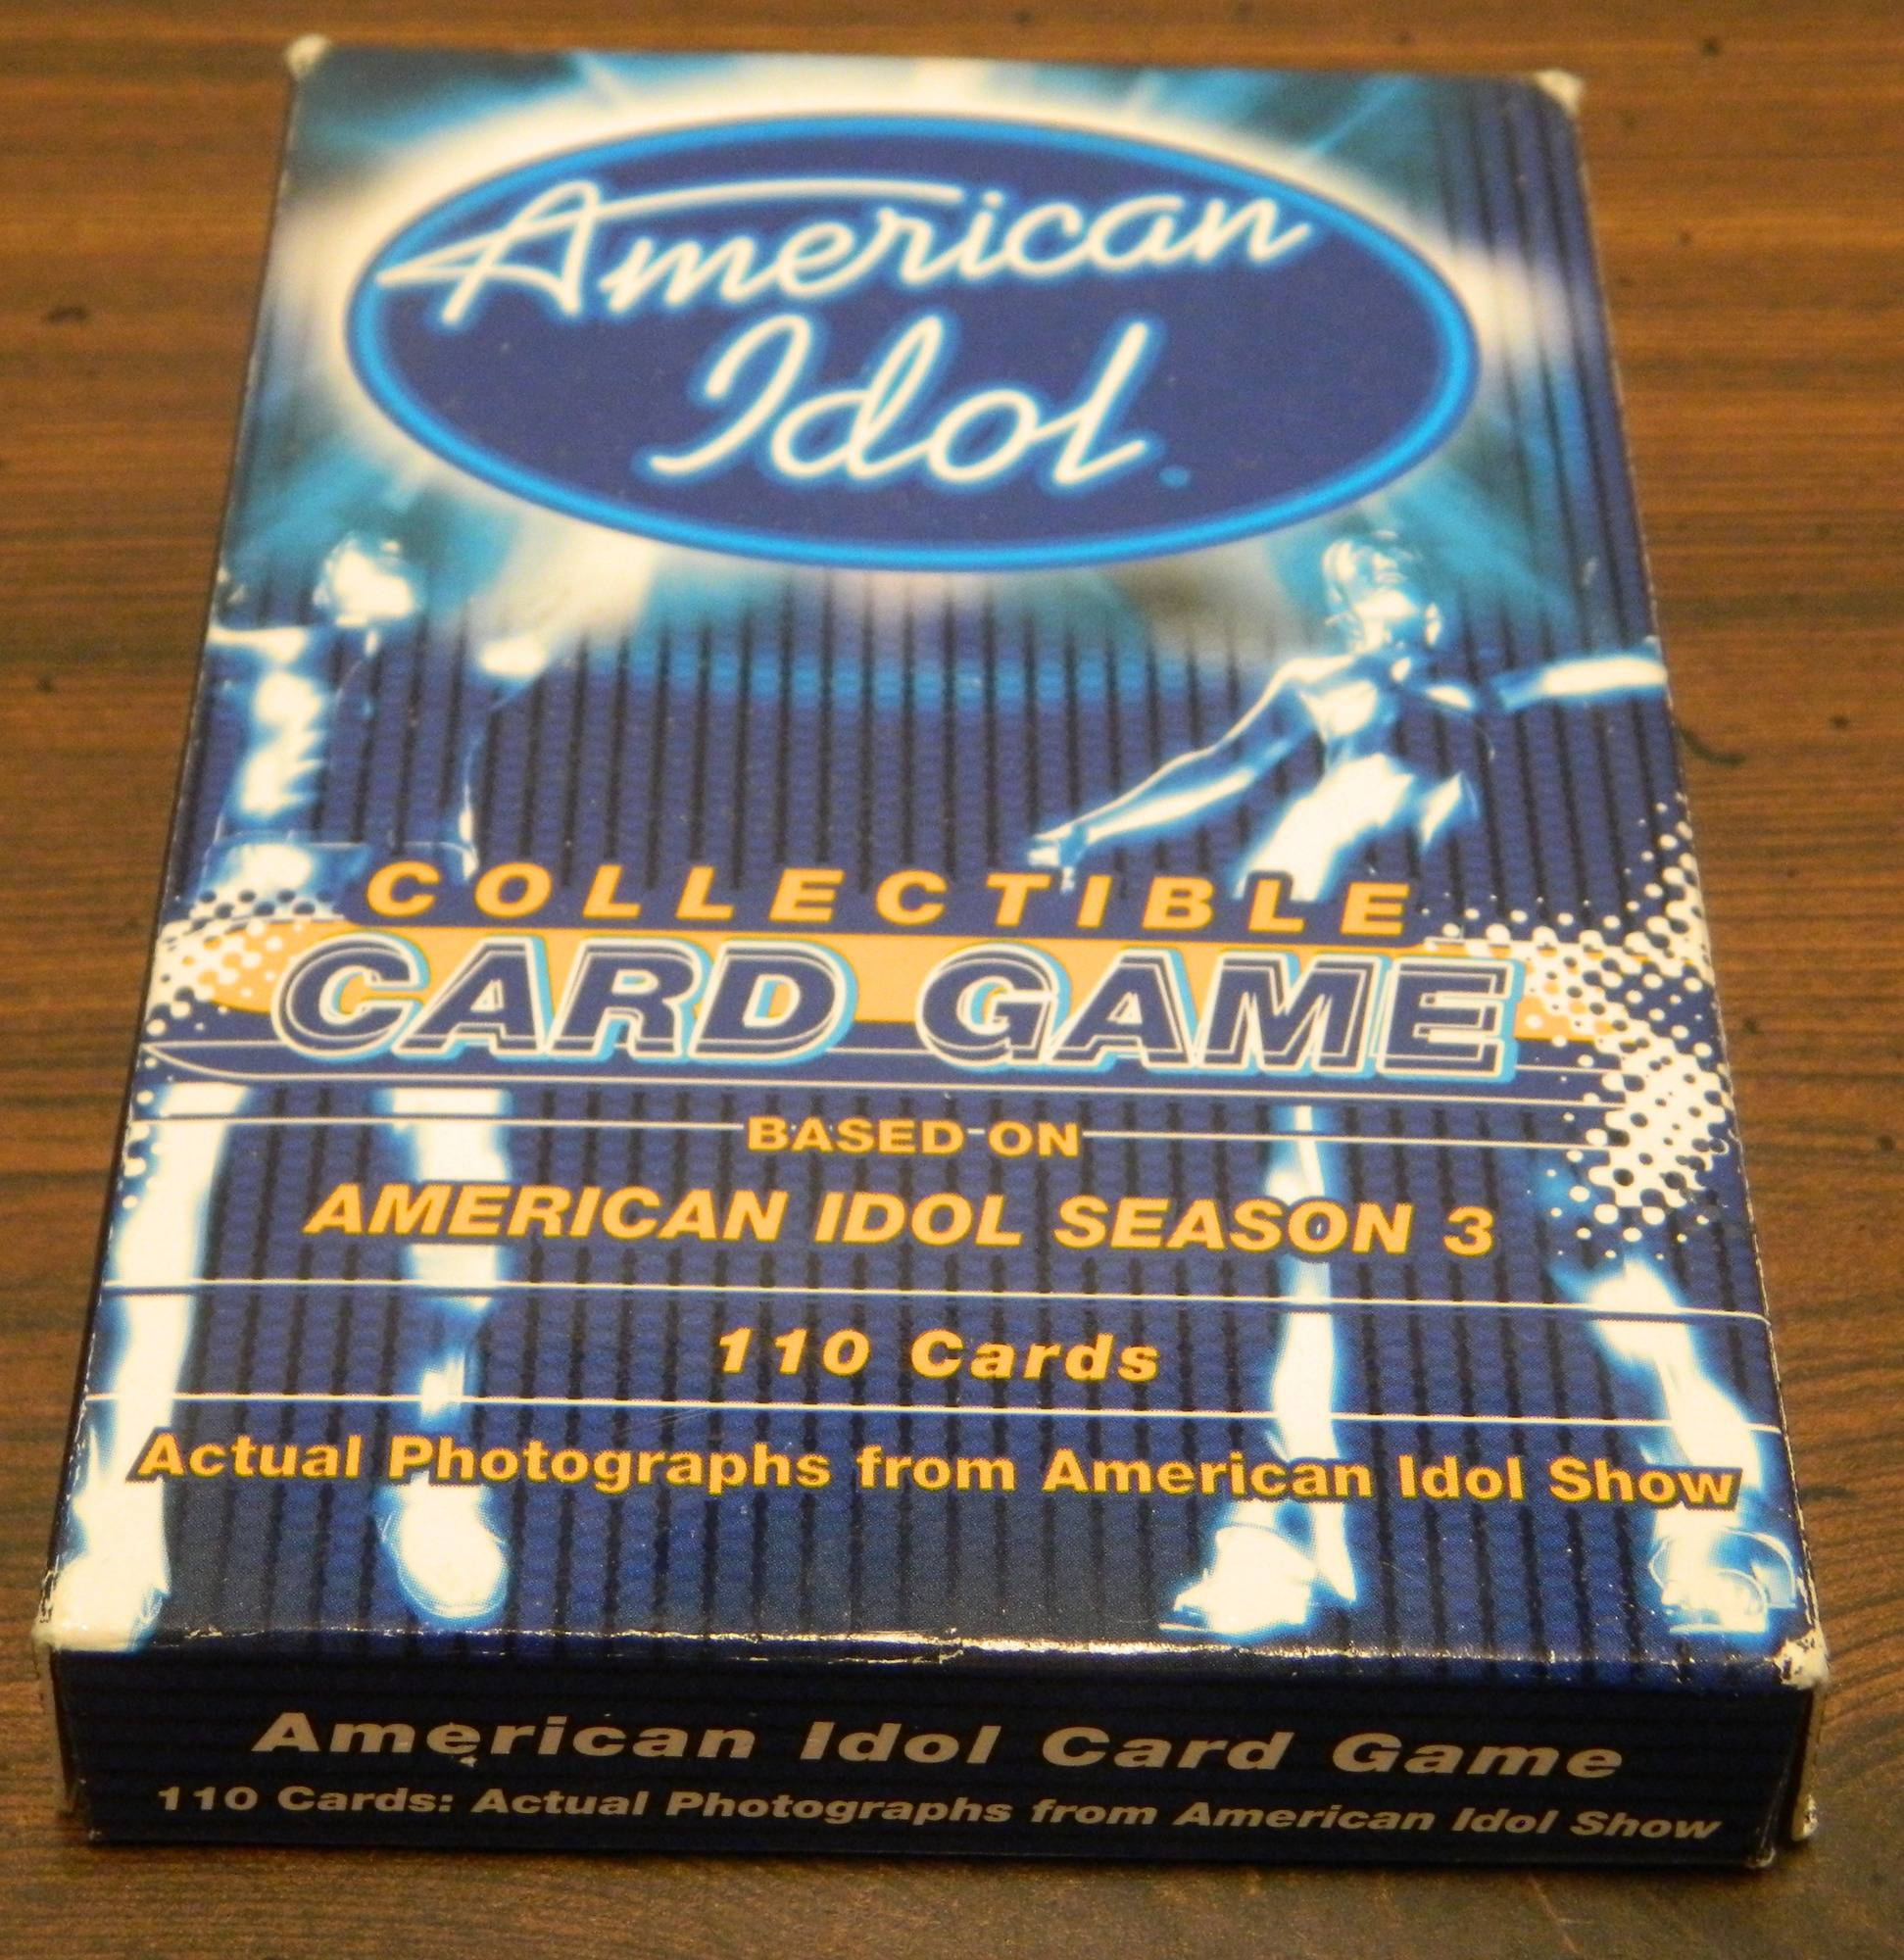 Box for American Idol Collectible Card Game